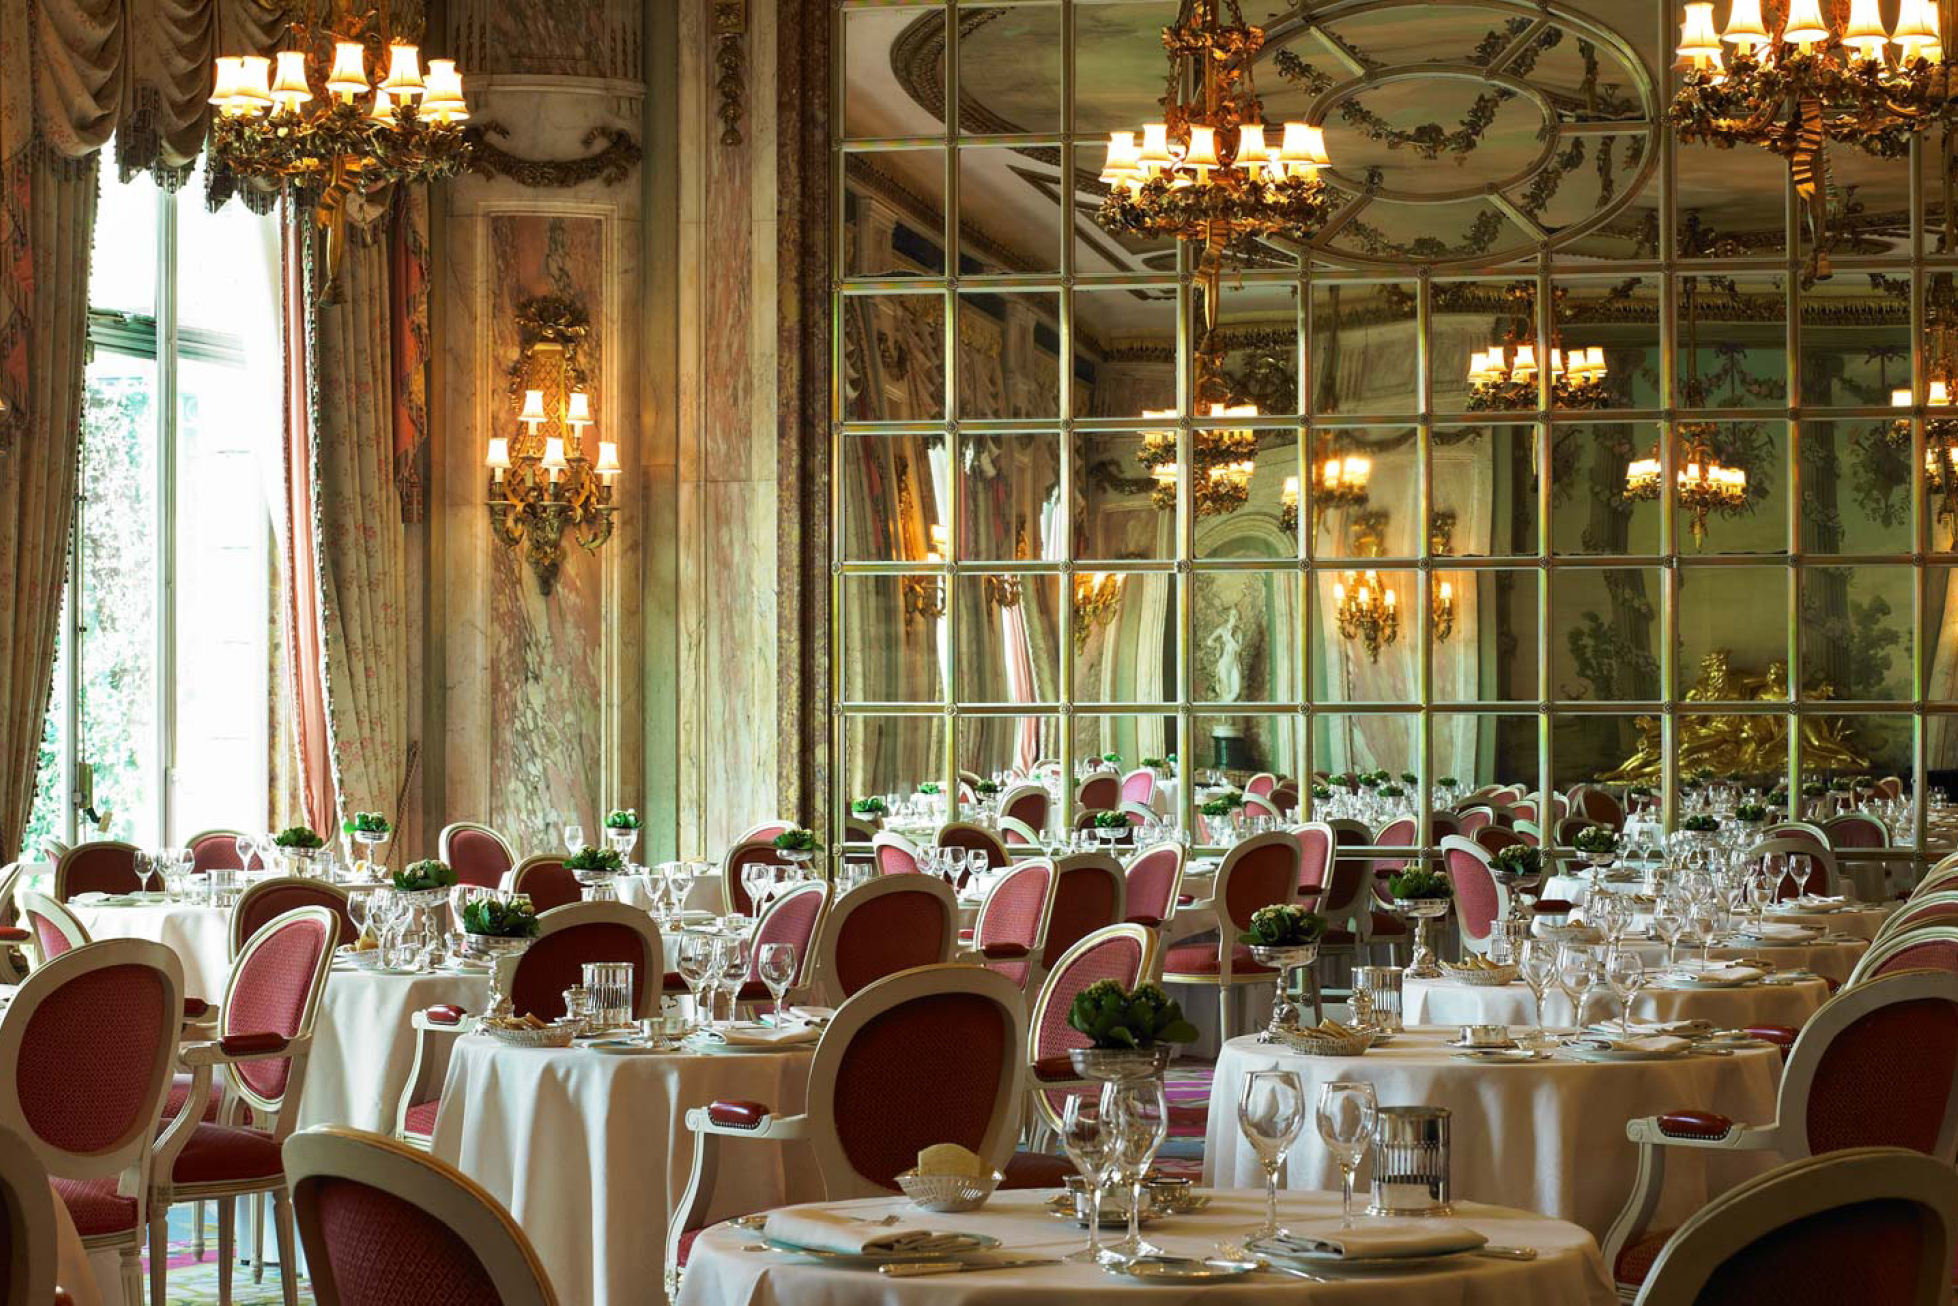 The ritz restaurant interior